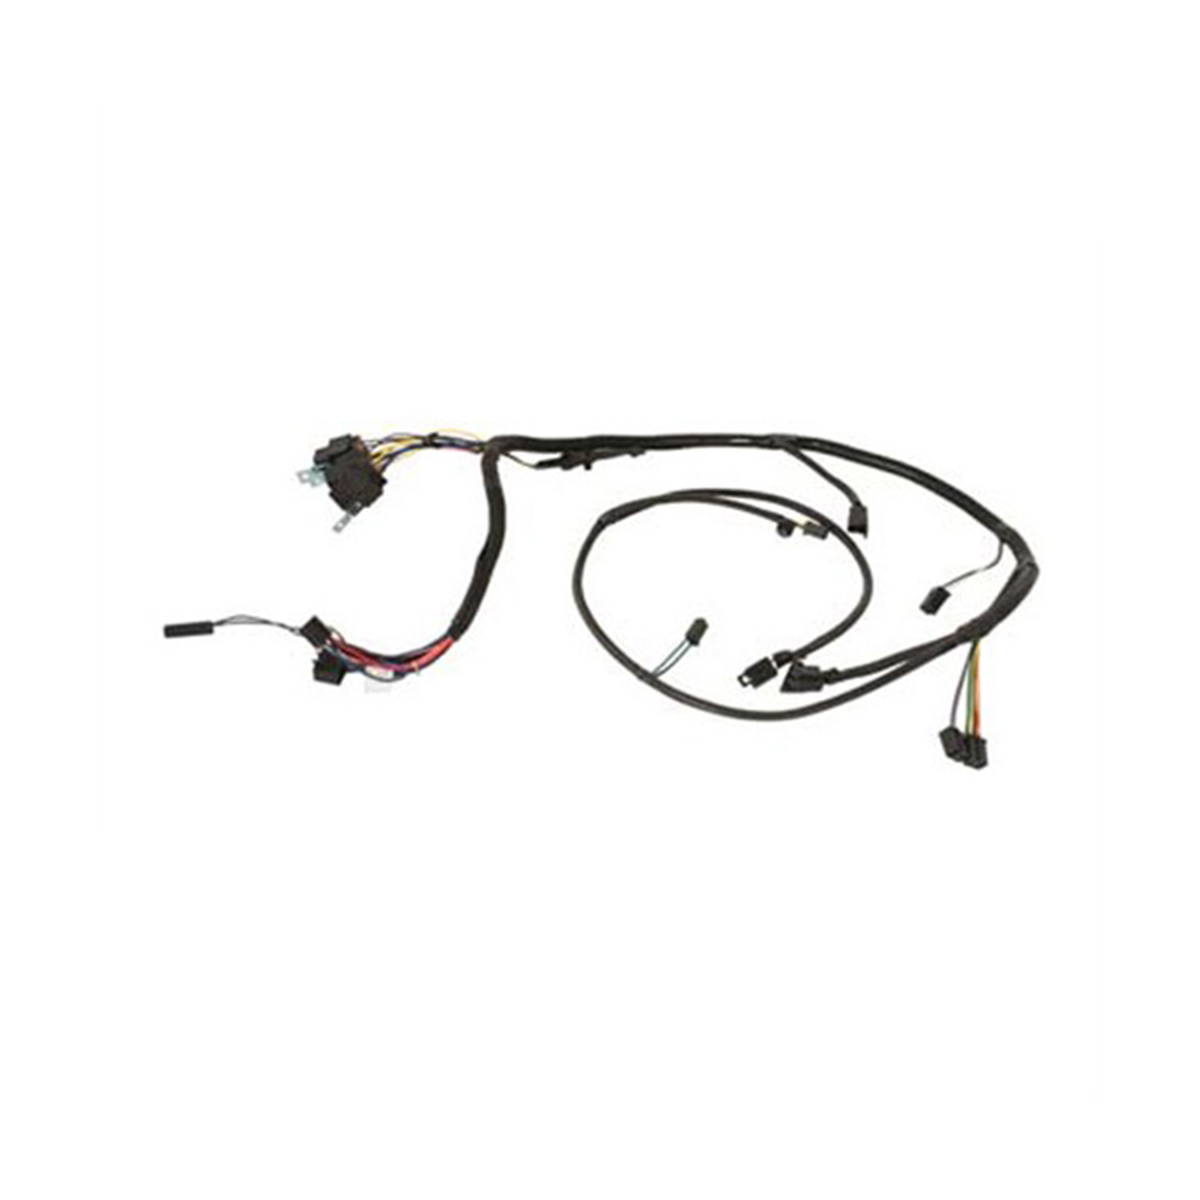 500014 wiring harnesses for dixie chopper lawn mowers dixie chopper wiring diagram at crackthecode.co